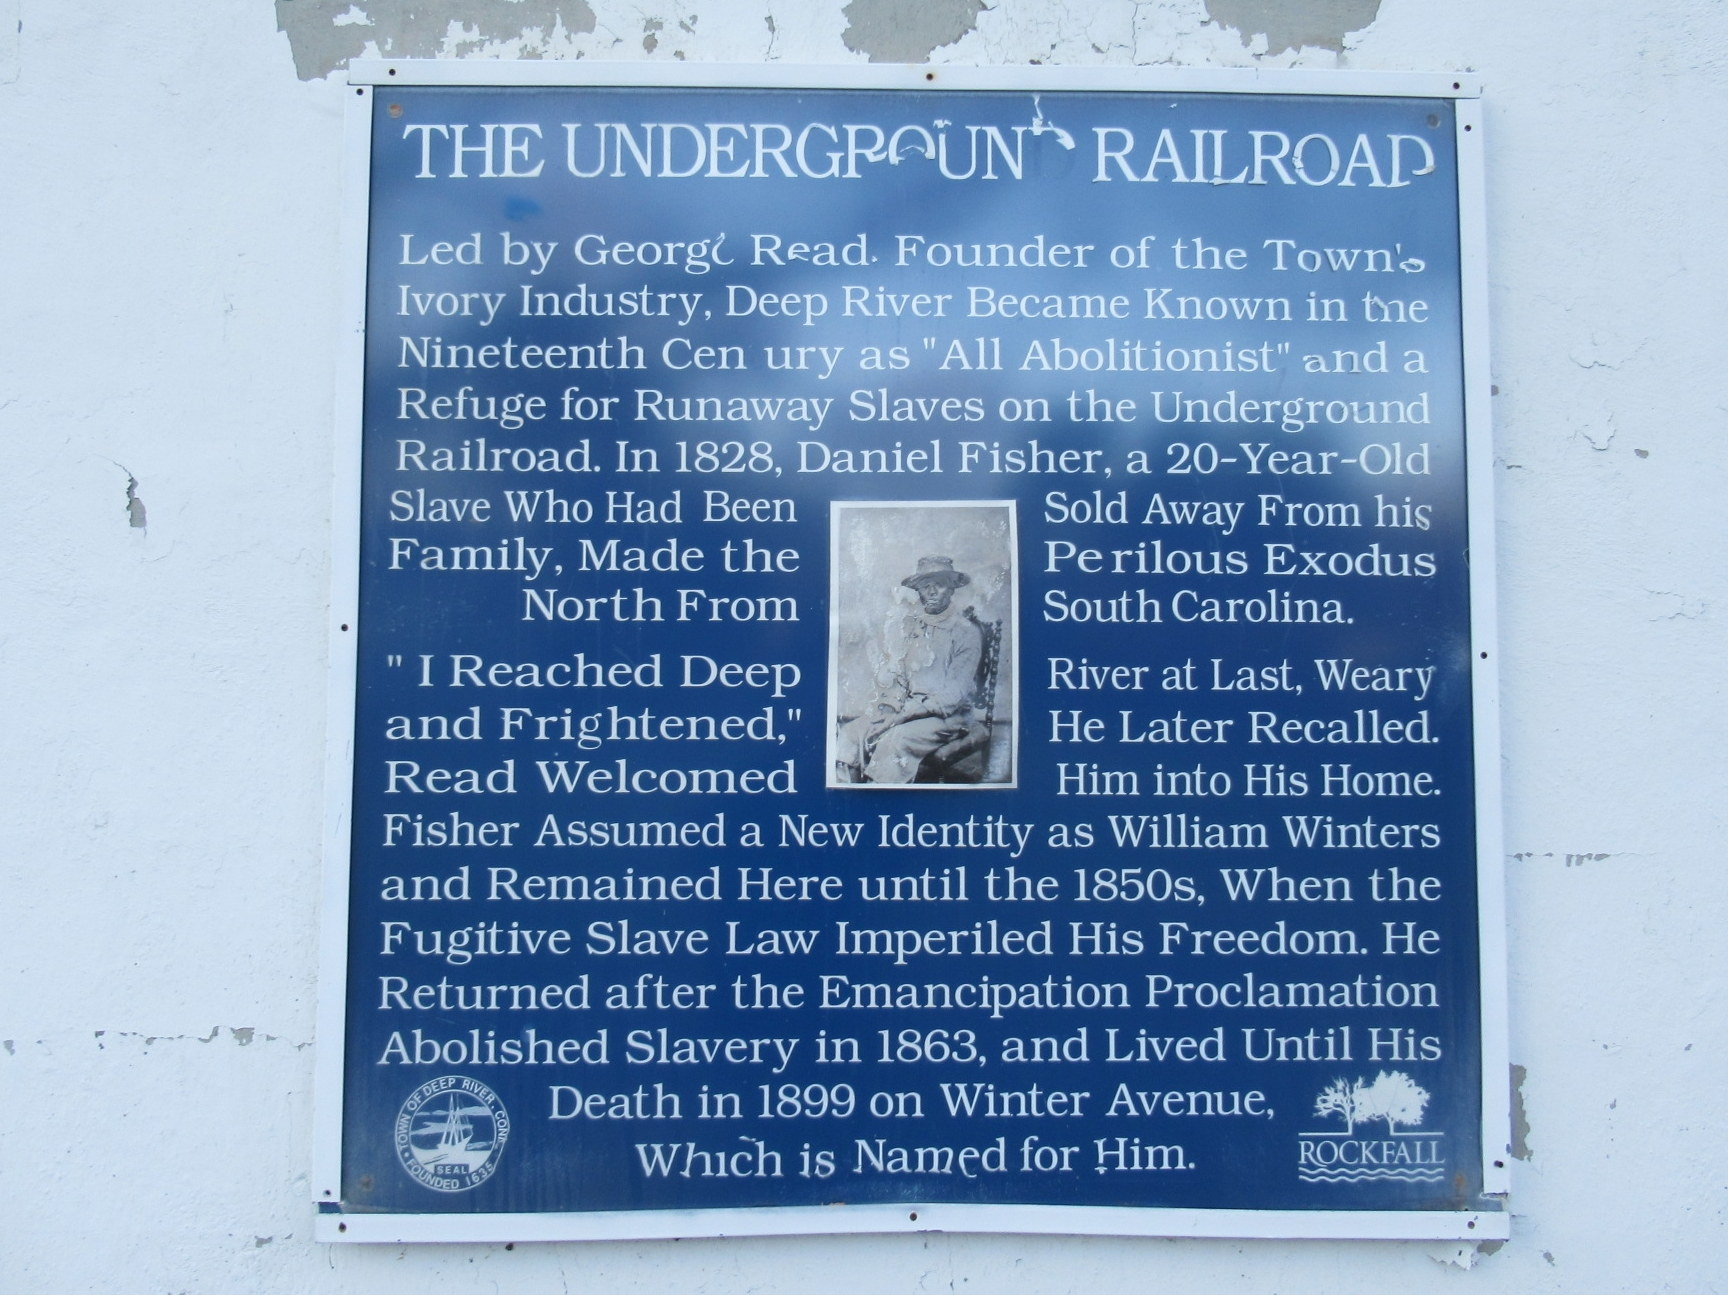 The Underground Railroad Marker